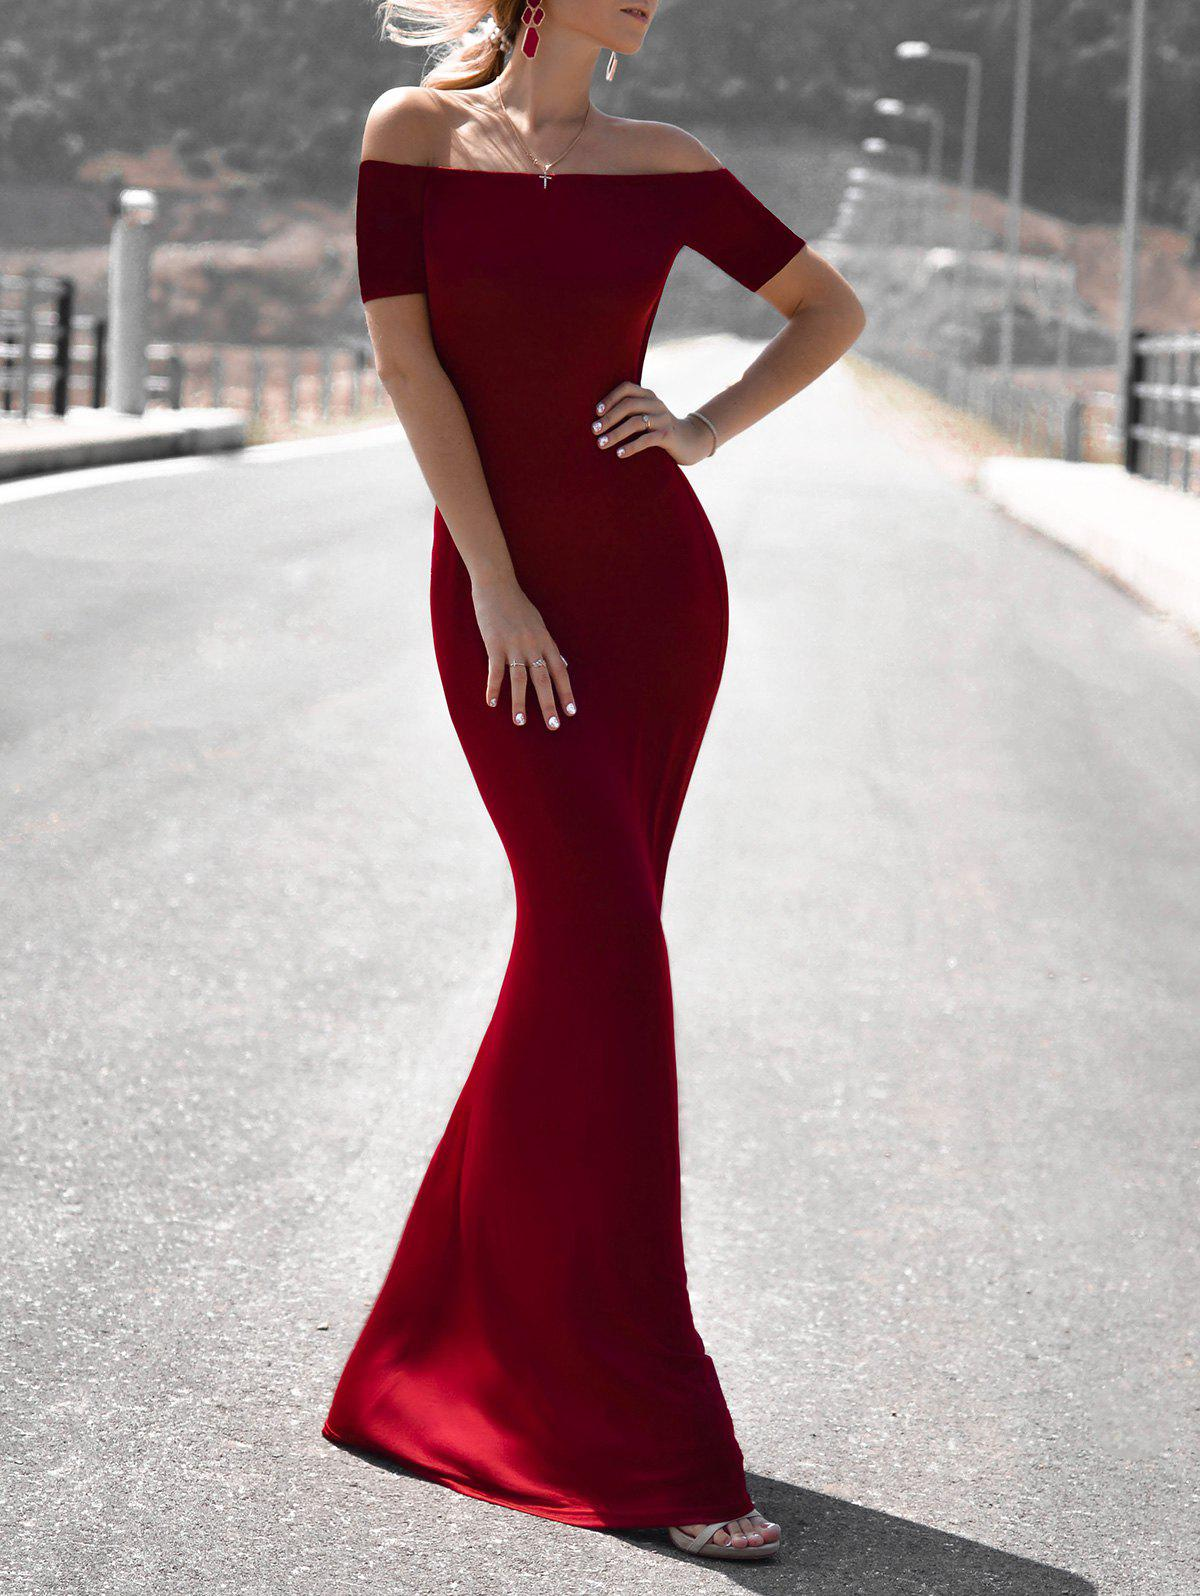 Women's Chic 3/4 Sleeve Off-The-Shoulder Pure Color Maxi Dress